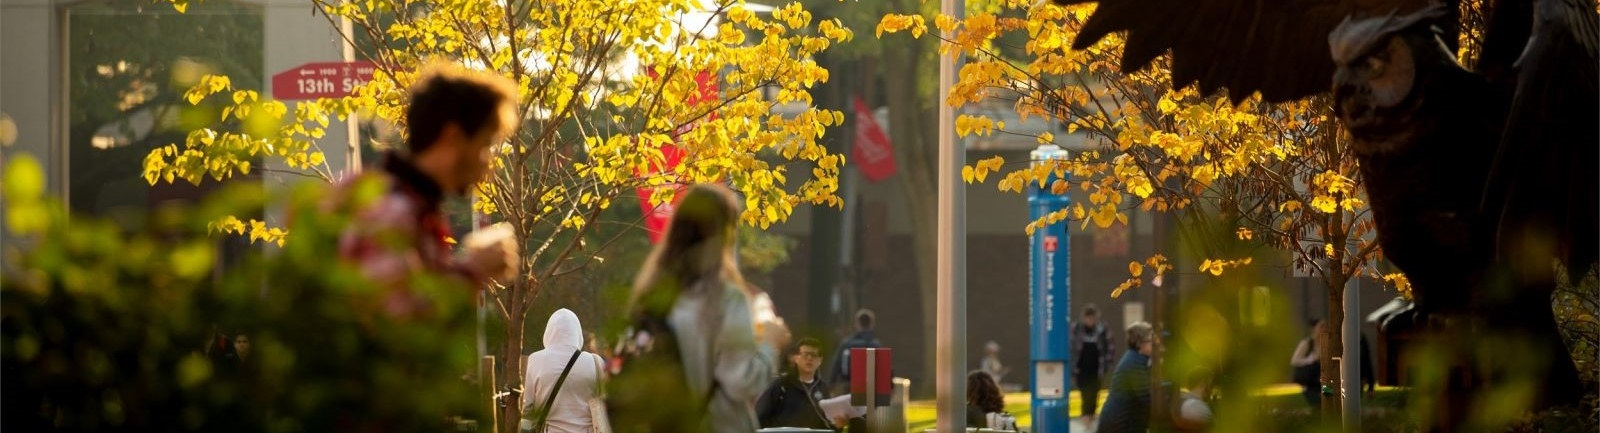 Temple University students walk across campus near 13th street during the fall.